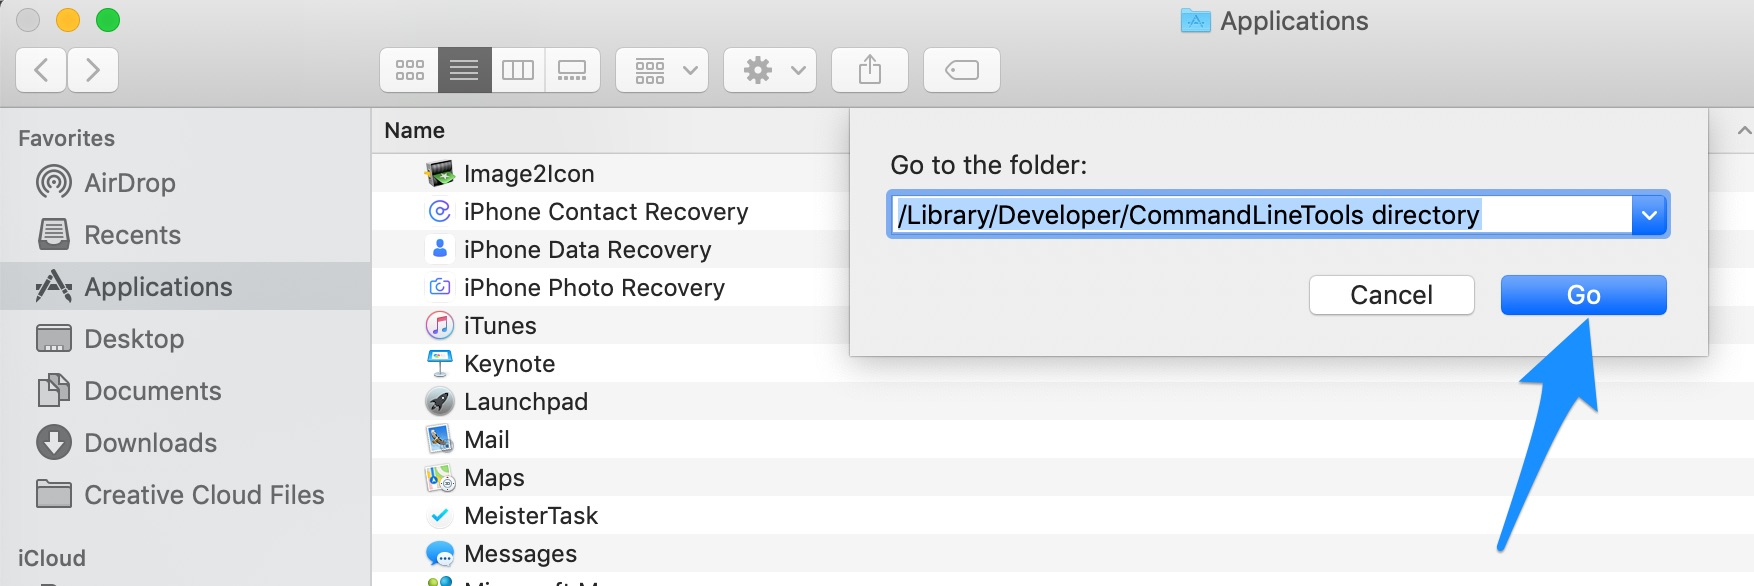 Uninstall Xcode Mac] How To Uninstall Xcode Command Line Tools on